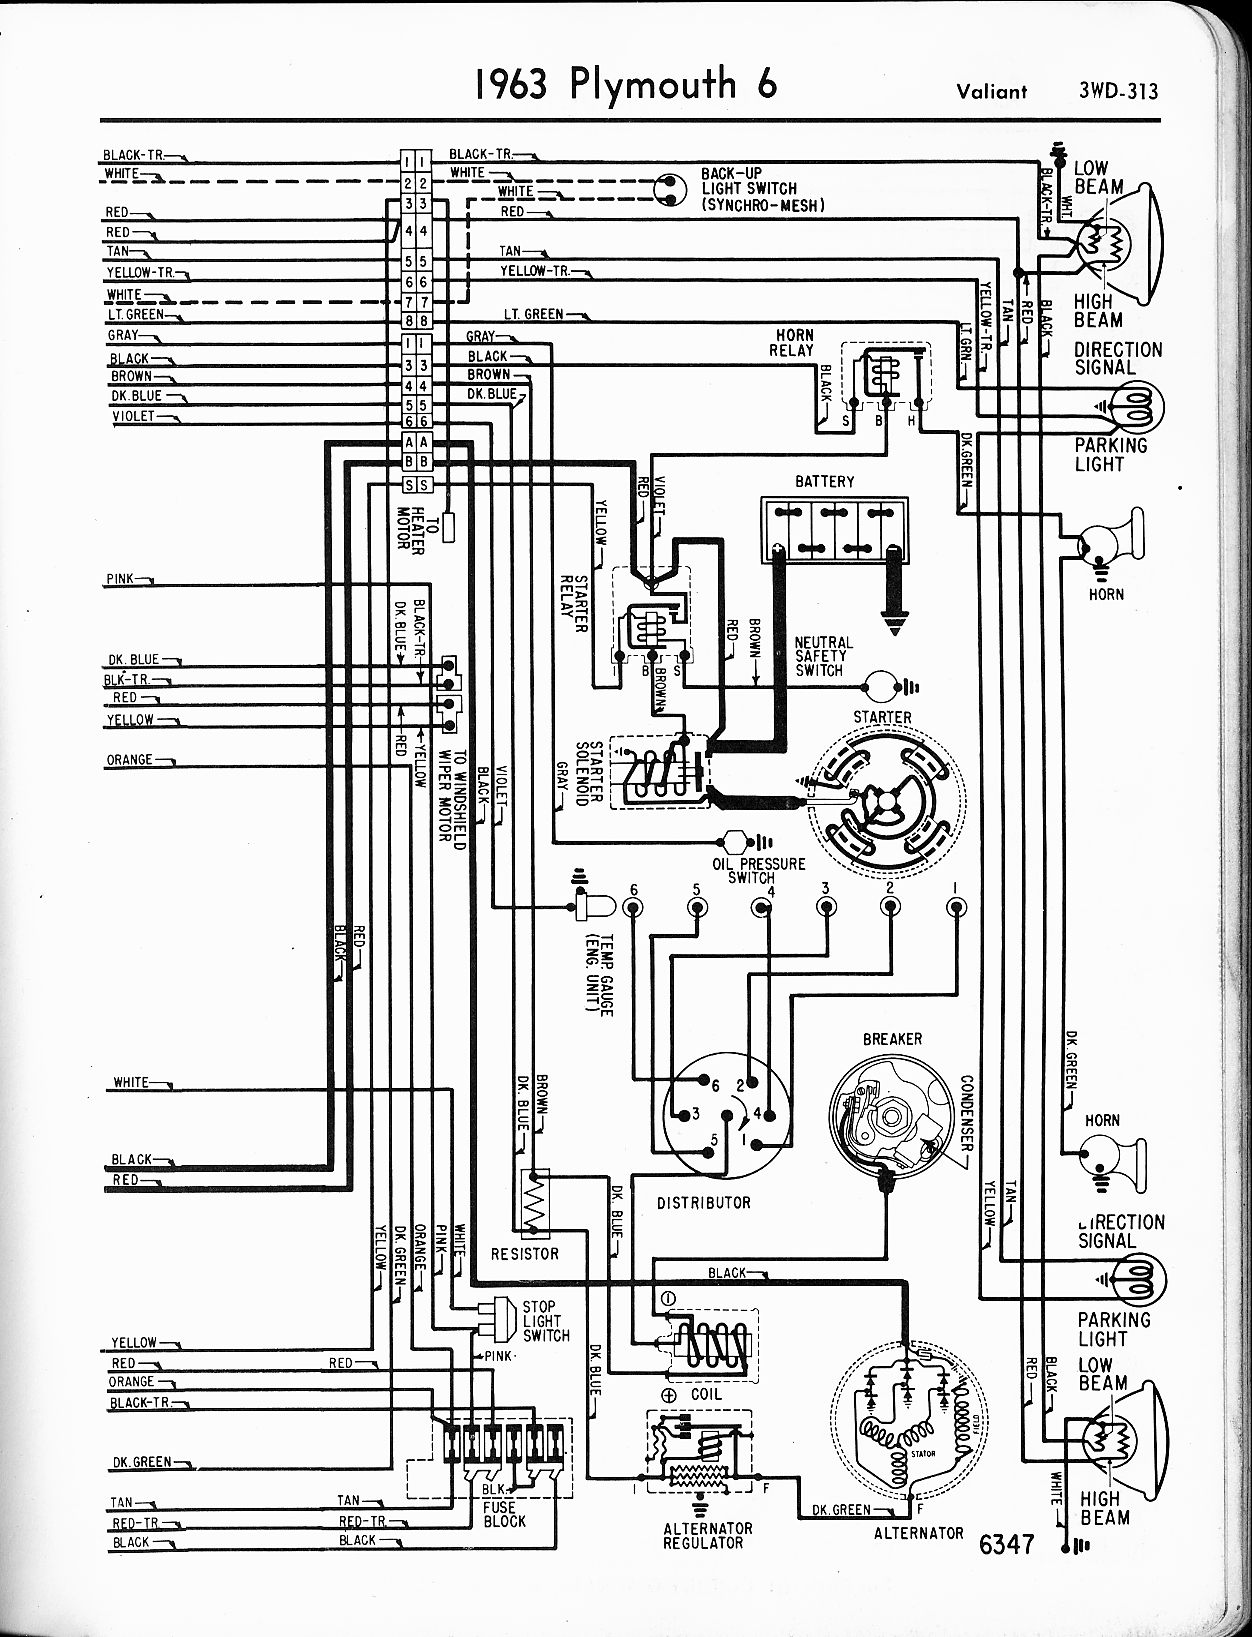 1971 Plymouth Duster Wiring Diagram Guide And Troubleshooting Of Novabackup Light Diagrams Satellite Todays Rh 8 6 12 1813weddingbarn Com Chevy Nova